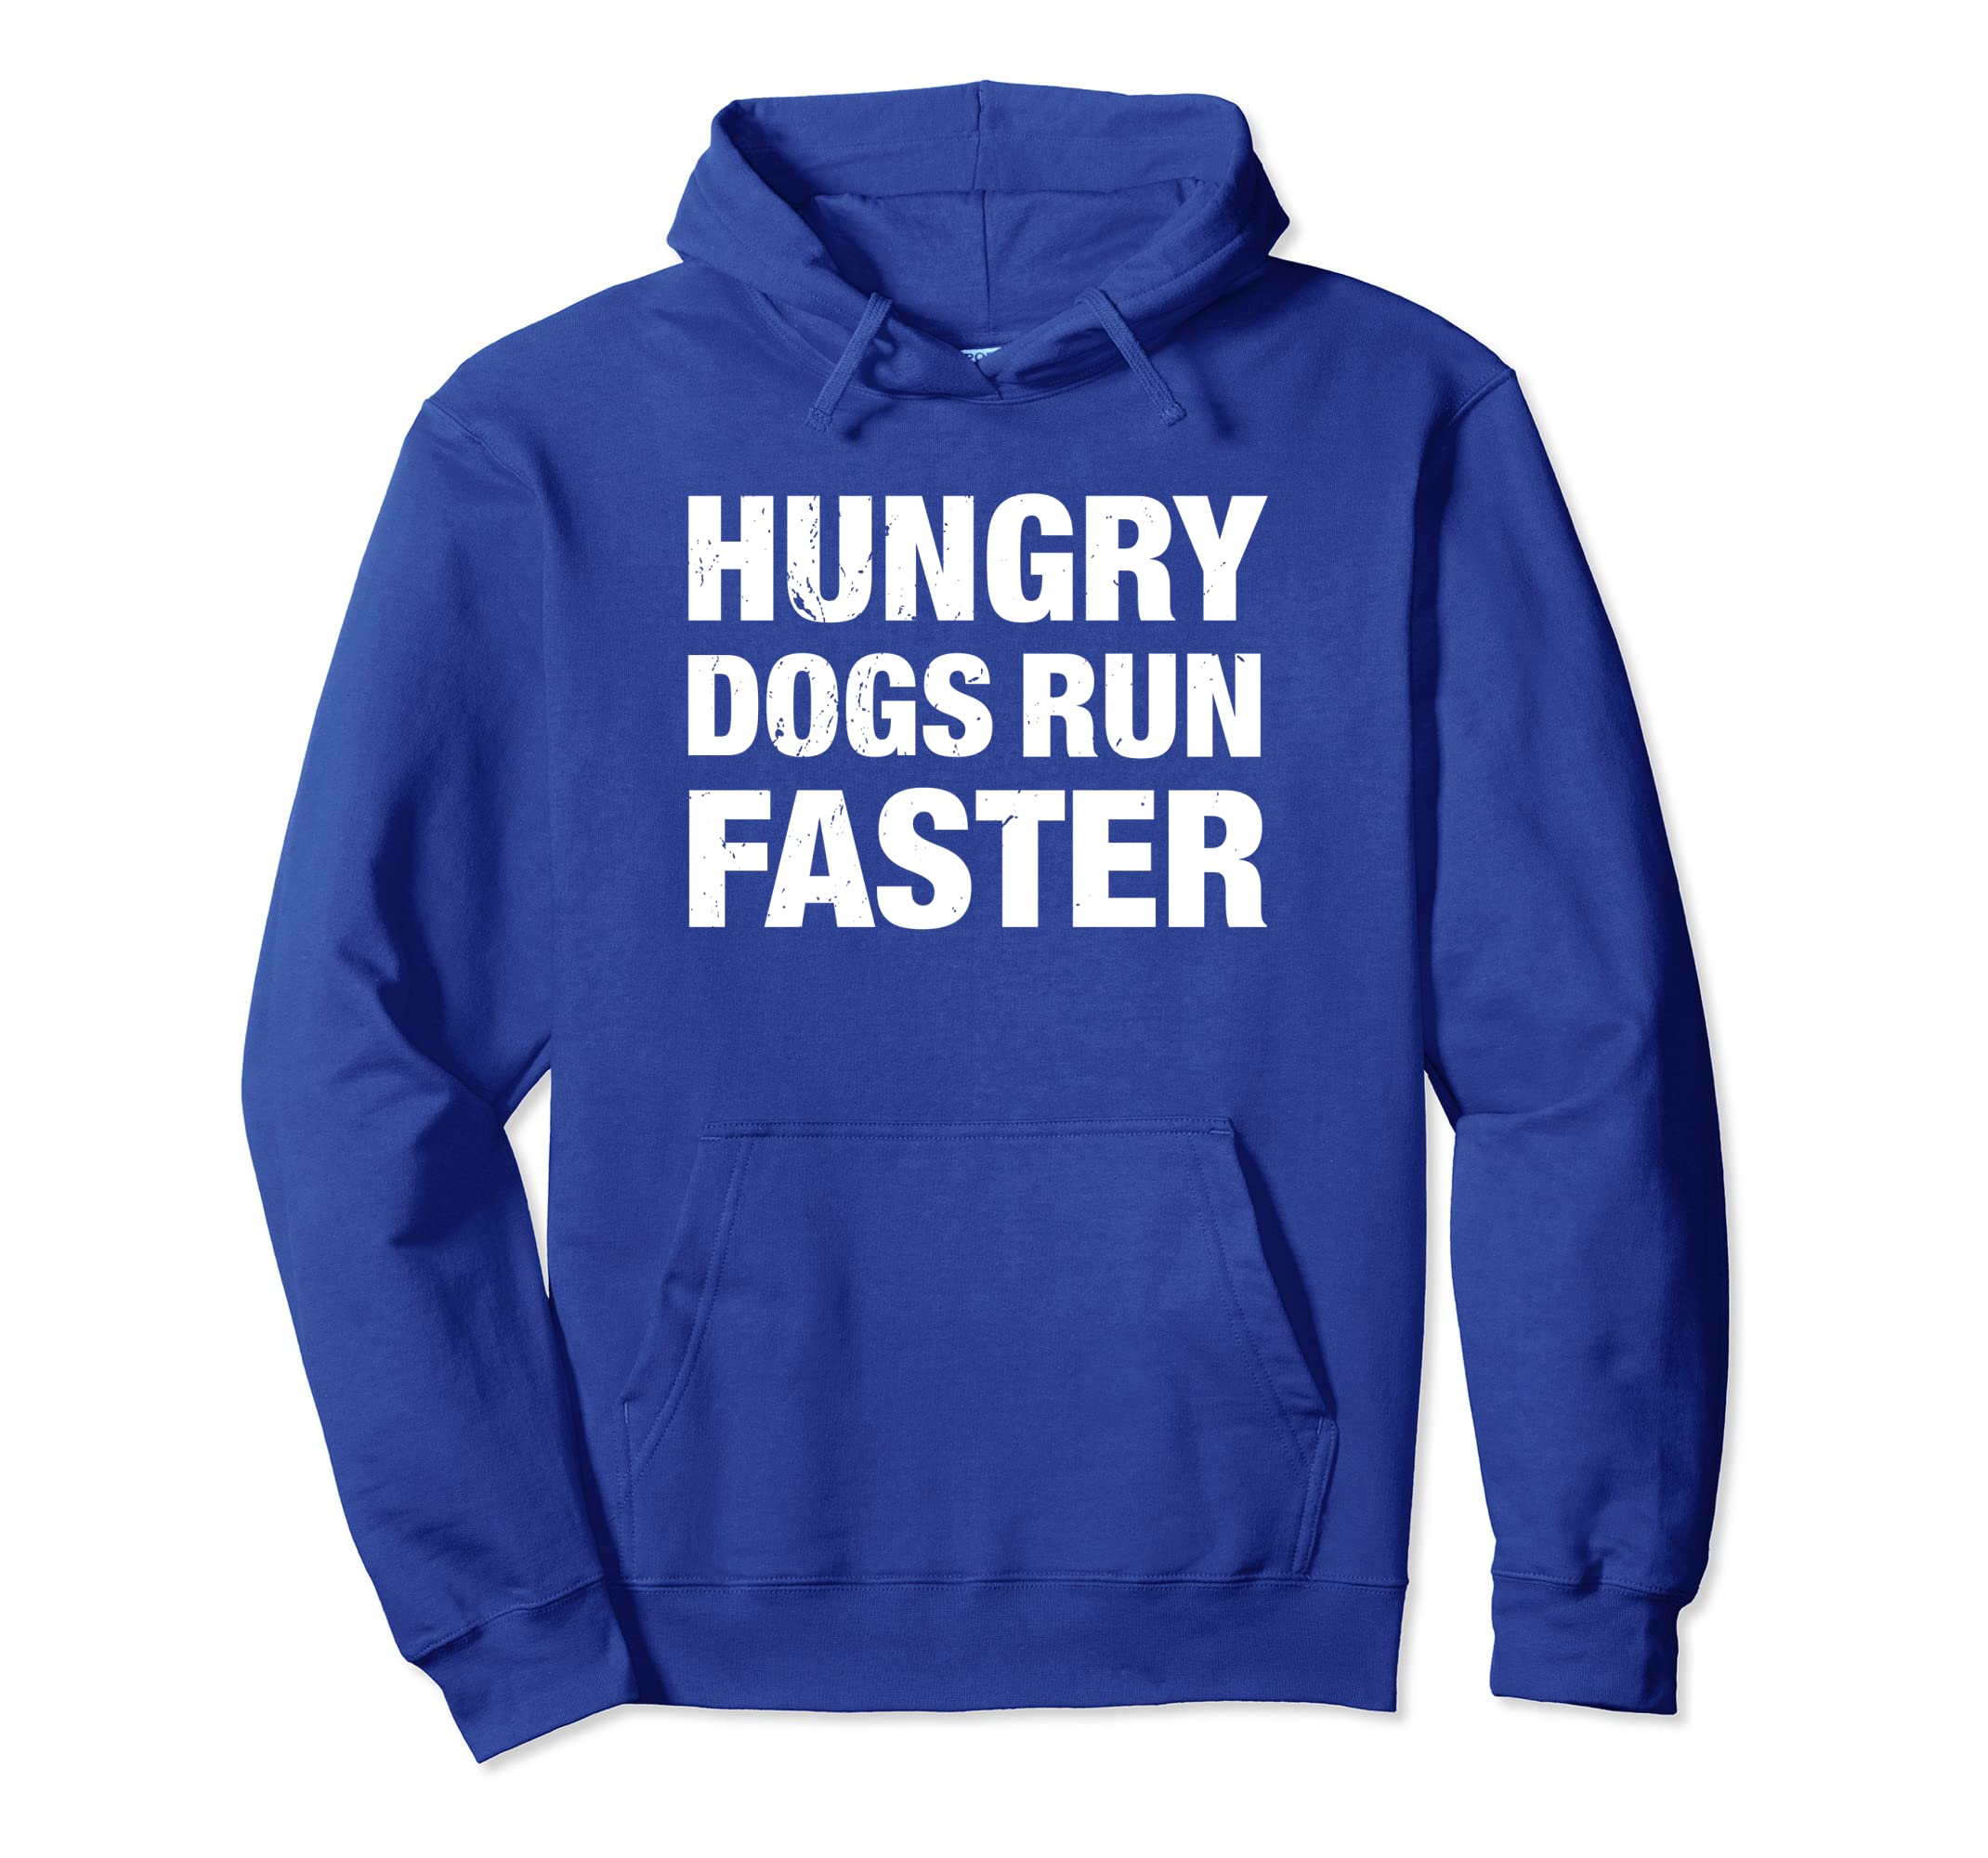 Funny Hungry Dogs Run Faster Hoodie for Philly Football Fans-Veotee